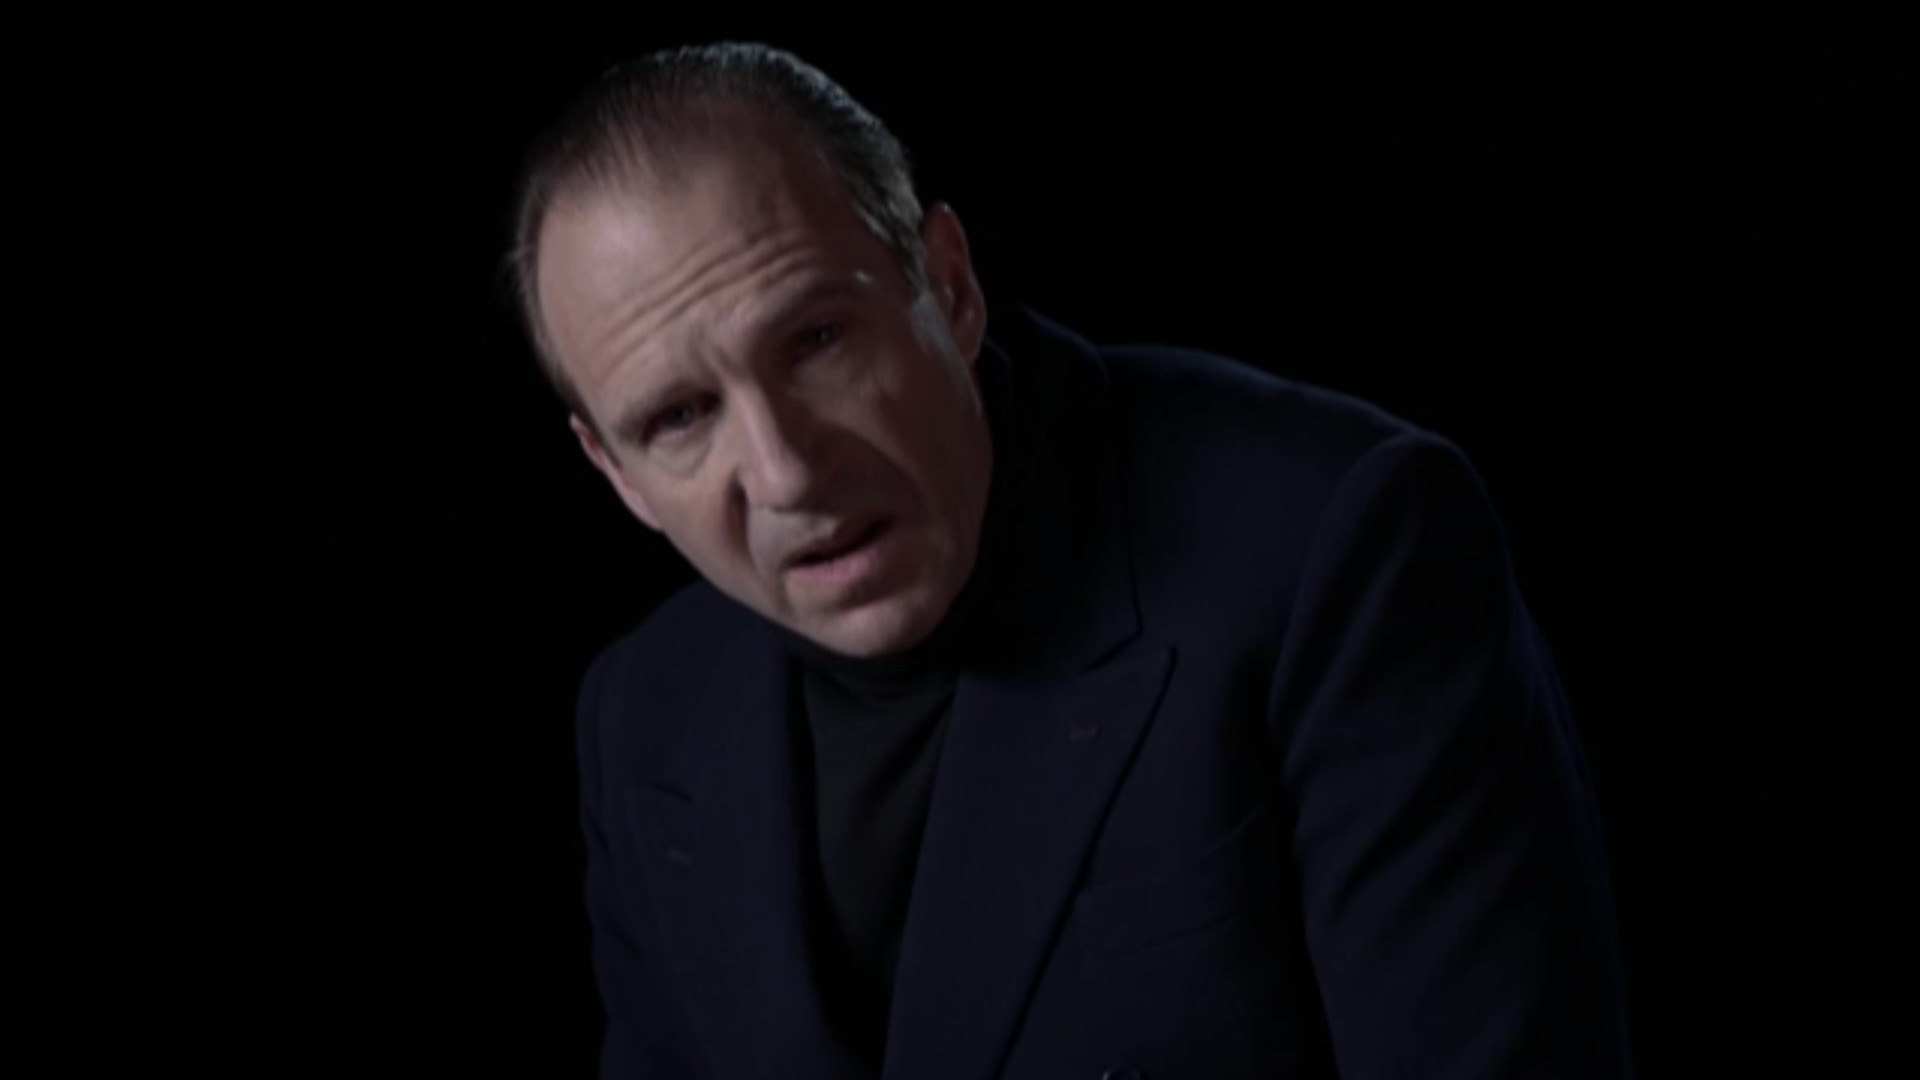 Photo of Ralph Fiennes Plays Richard III in New Shakespeare Short